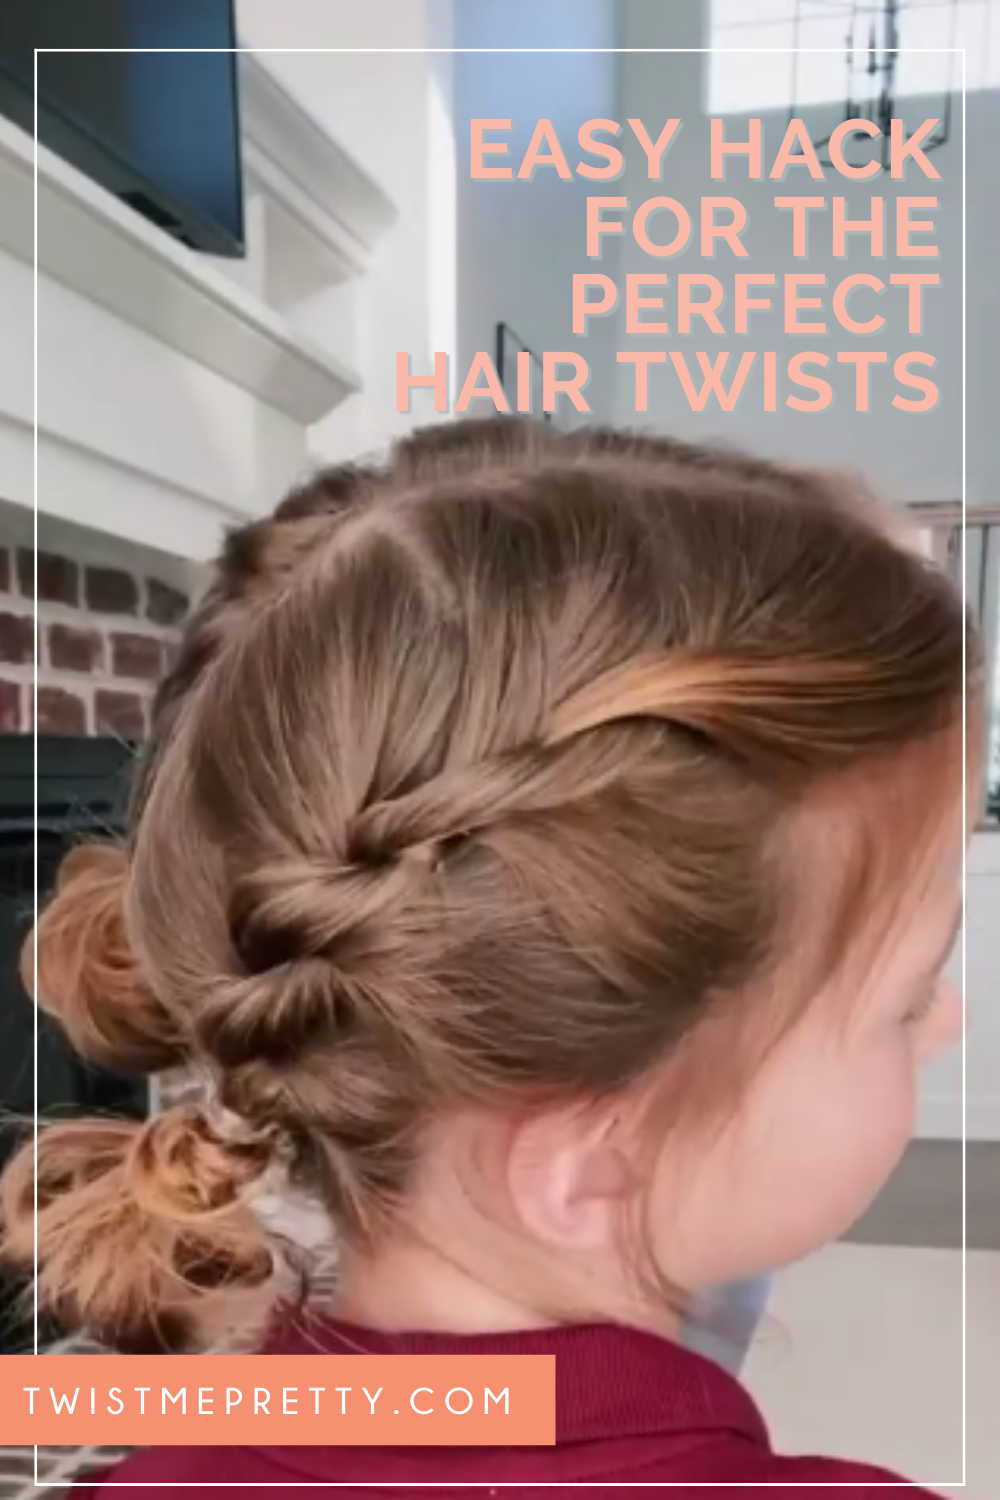 Send your girl out with these perfect hair twists that she will love! www.twistmepretty.com